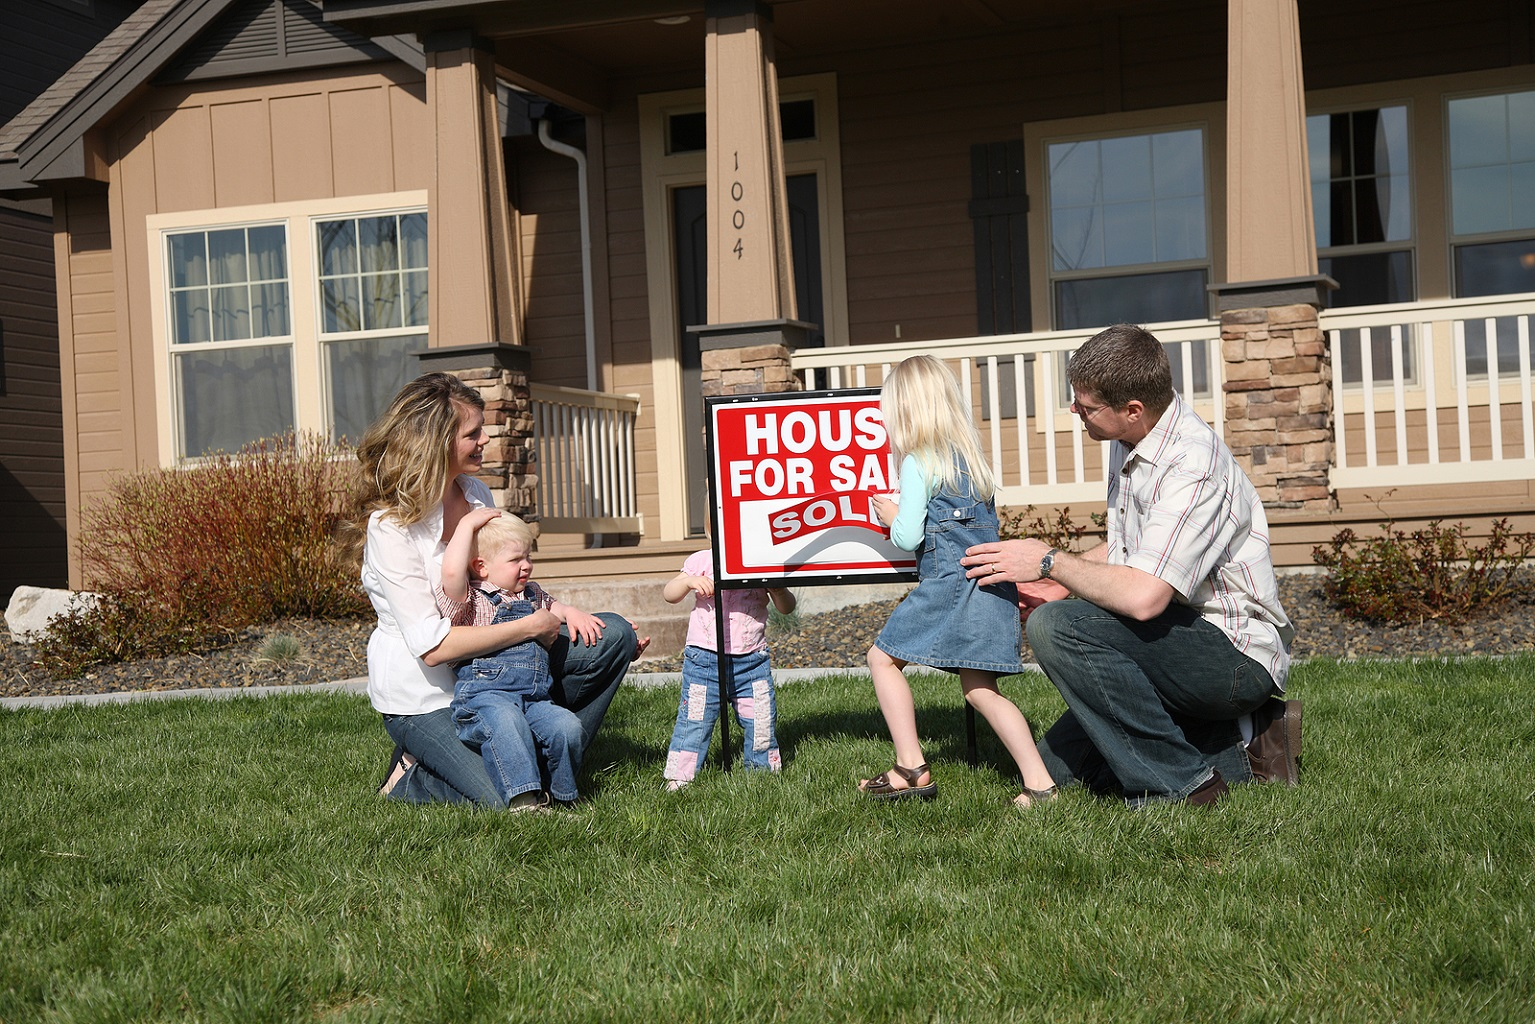 Navigating the offer to purchase a home